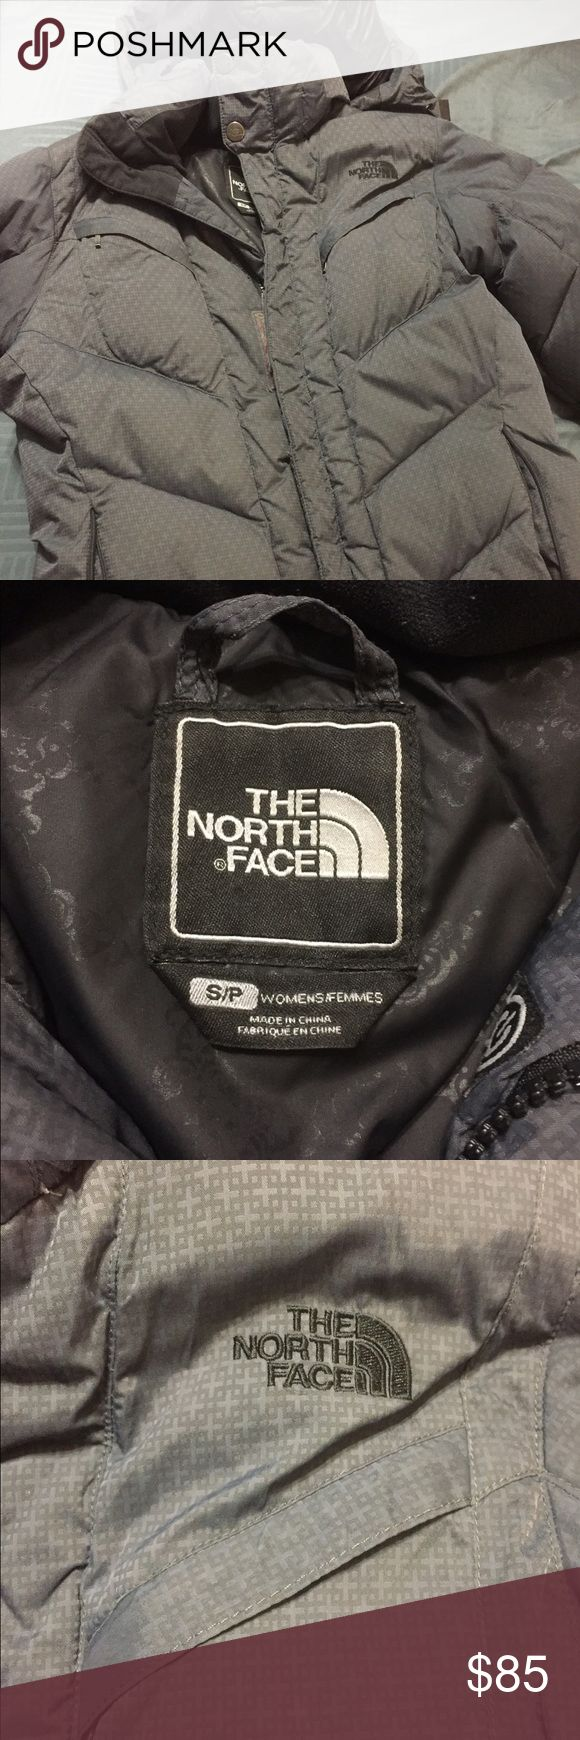 The north face women's coat Very warm north face women's puffer coat. Size small. Grey. Great condition North Face Jackets & Coats